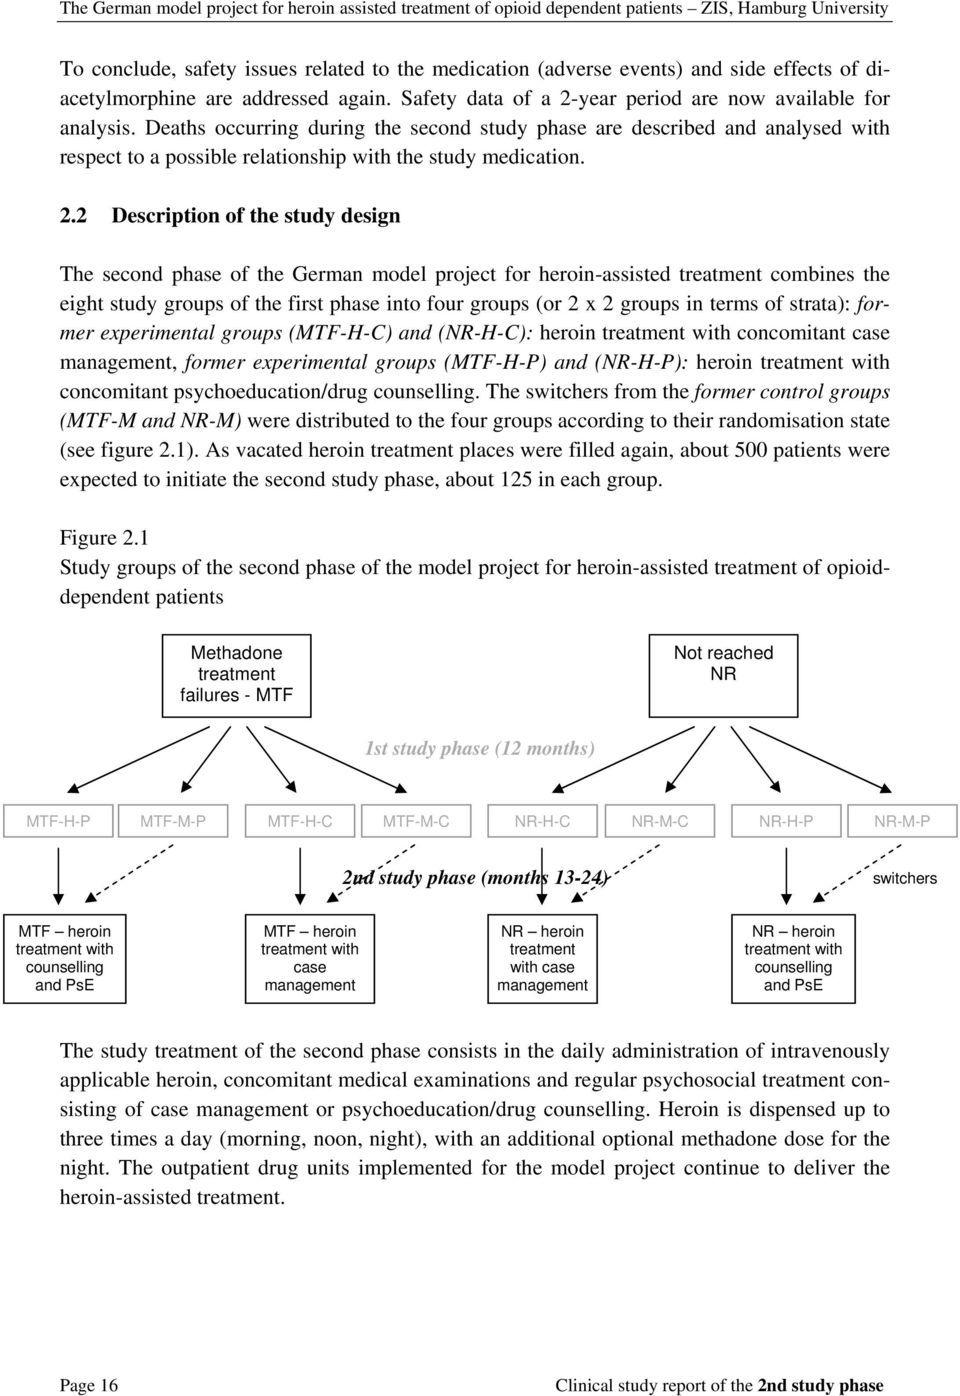 2 Description of the study design The second phase of the German model project for heroin-assisted treatment combines the eight study groups of the first phase into four groups (or 2 x 2 groups in